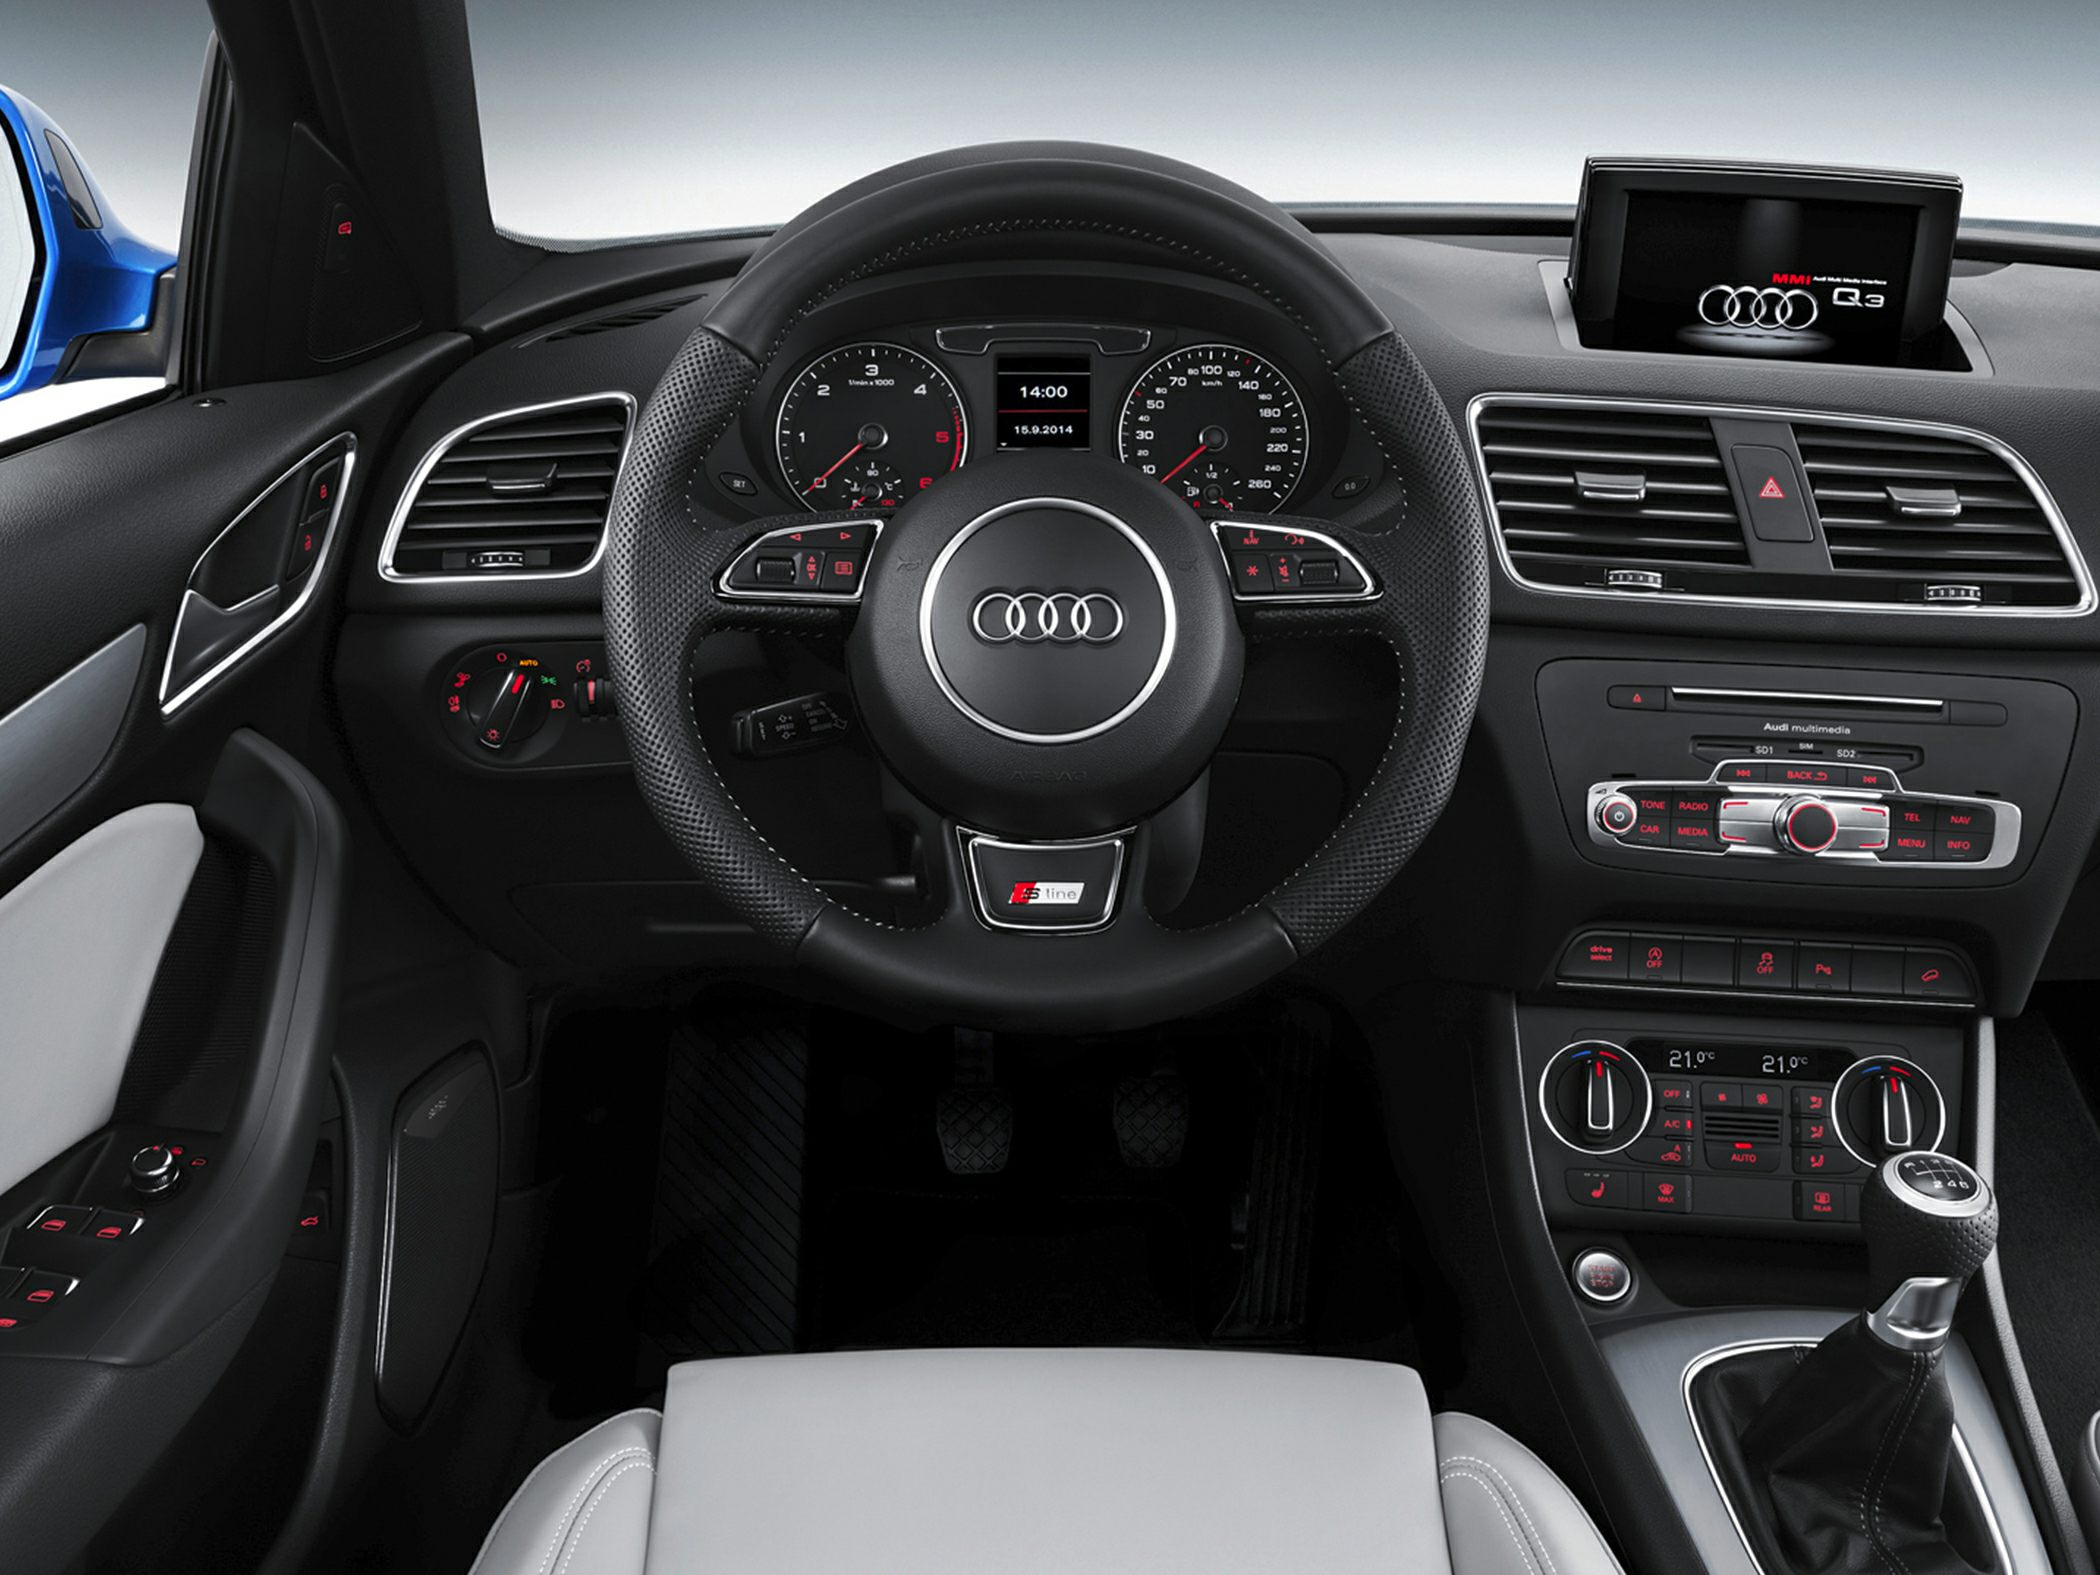 2016 Audi Q3 Styles Amp Features Highlights